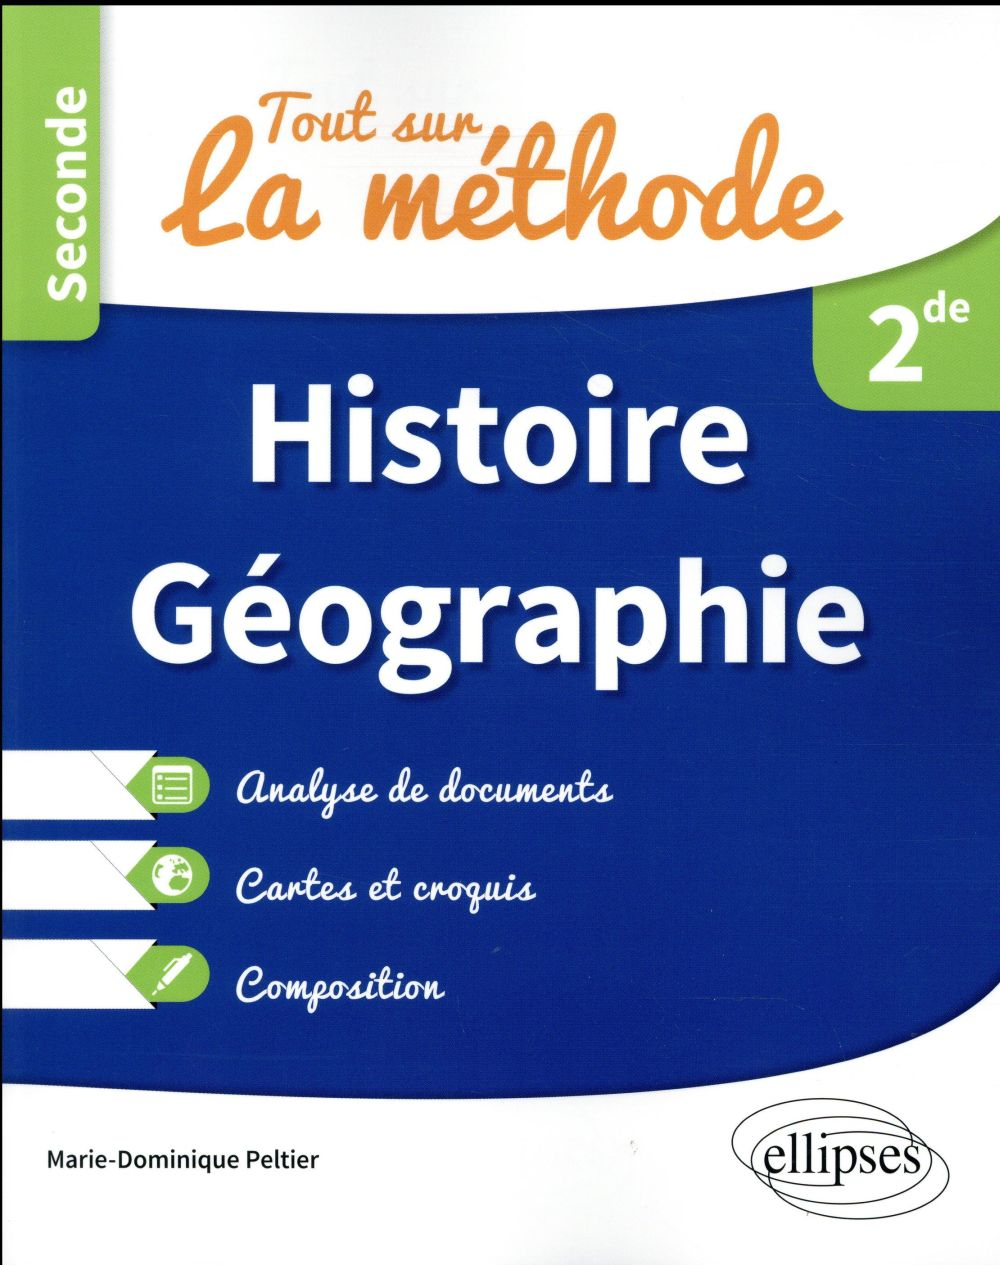 TOUT SUR LA METHODE EN HISTOIRE GEOGRAPHIE SECONDE ANALYSE DE DOCUMENTS CARTES CROQUIS COMPOSITION